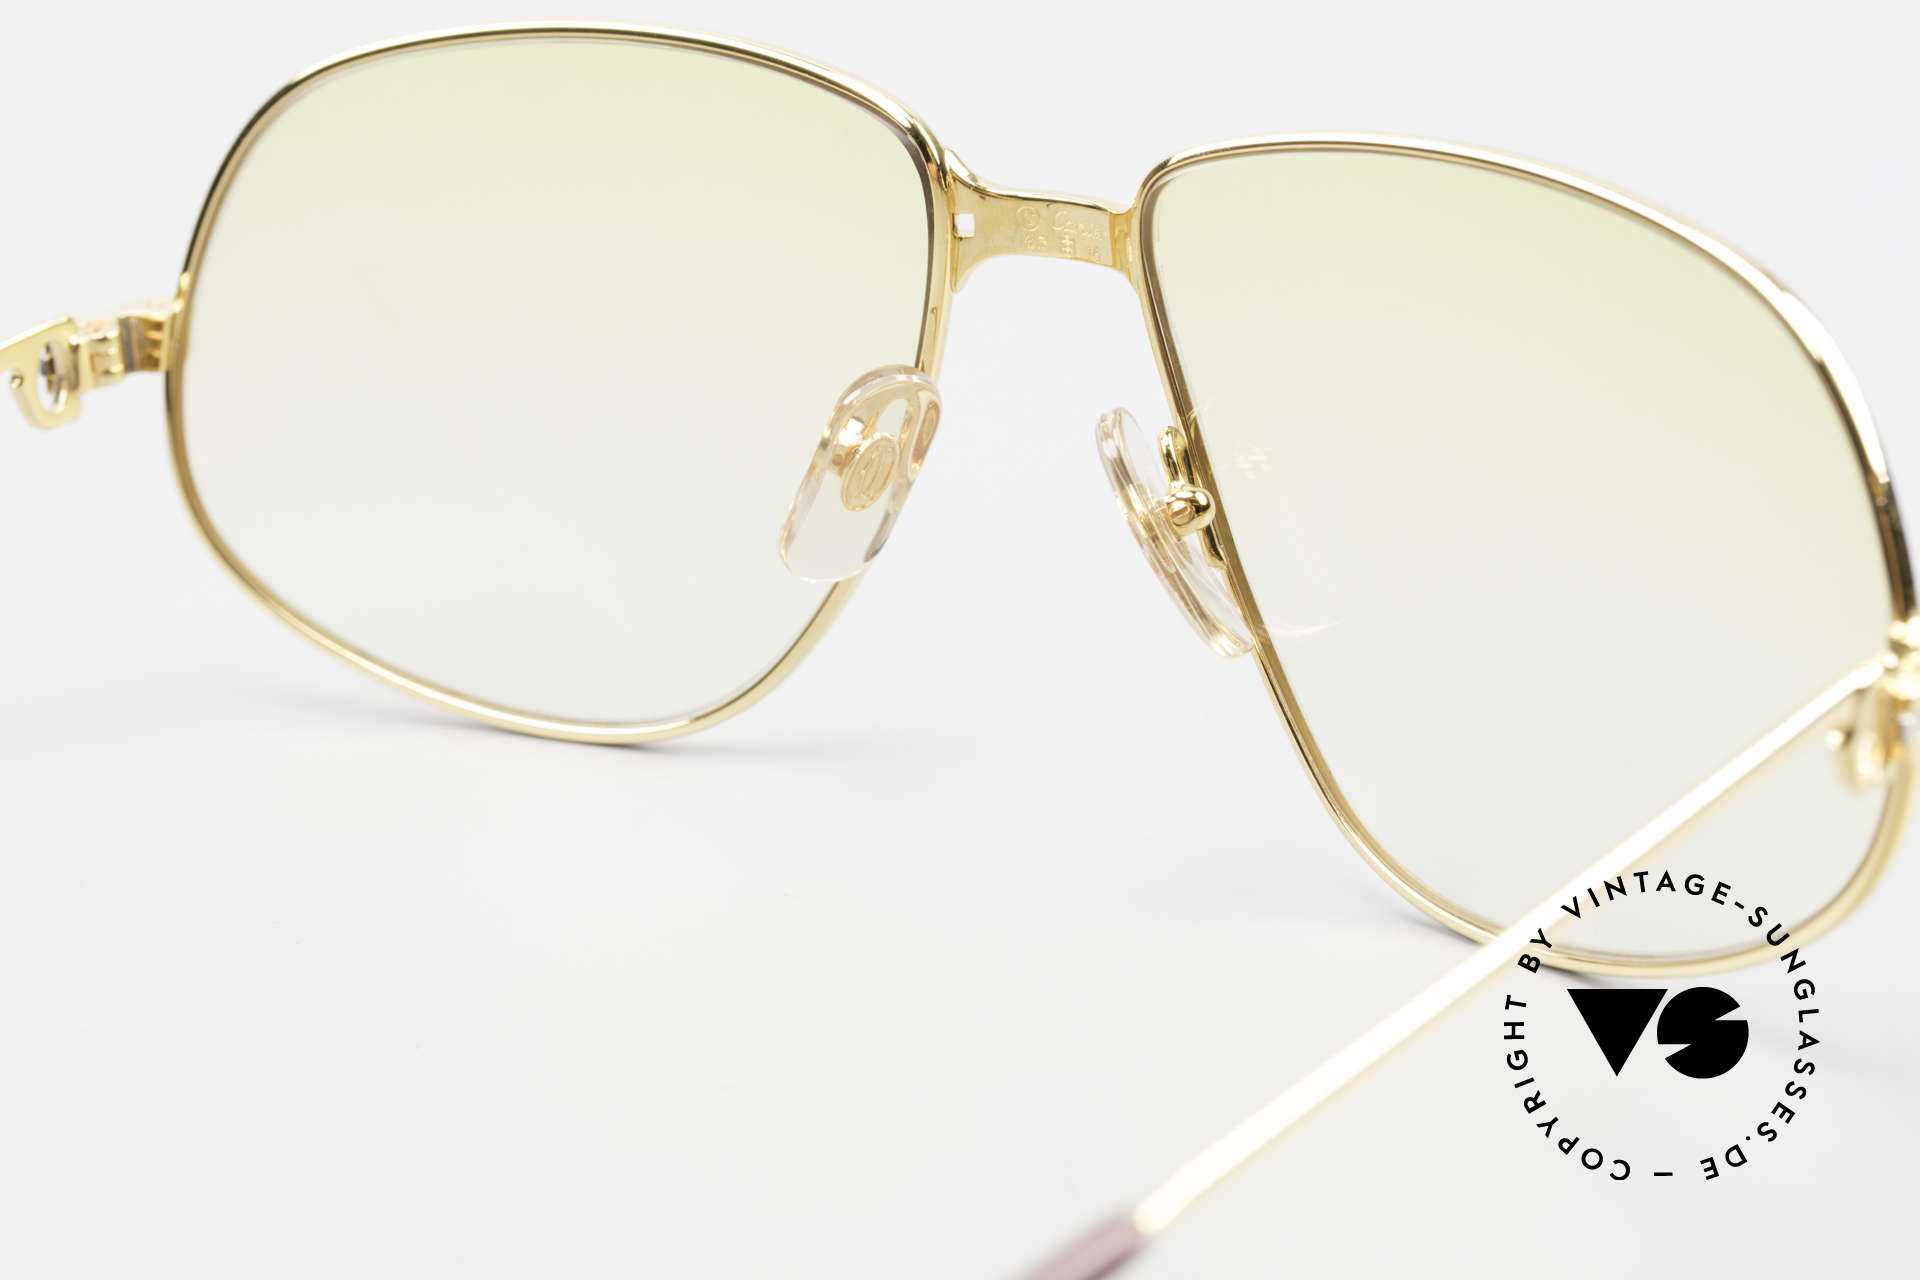 Cartier Panthere G.M. - XL Yellow Lenses And Bvlgari Case, NO RETRO eyewear; a rare 30 years old vintage ORIGINAL!, Made for Men and Women